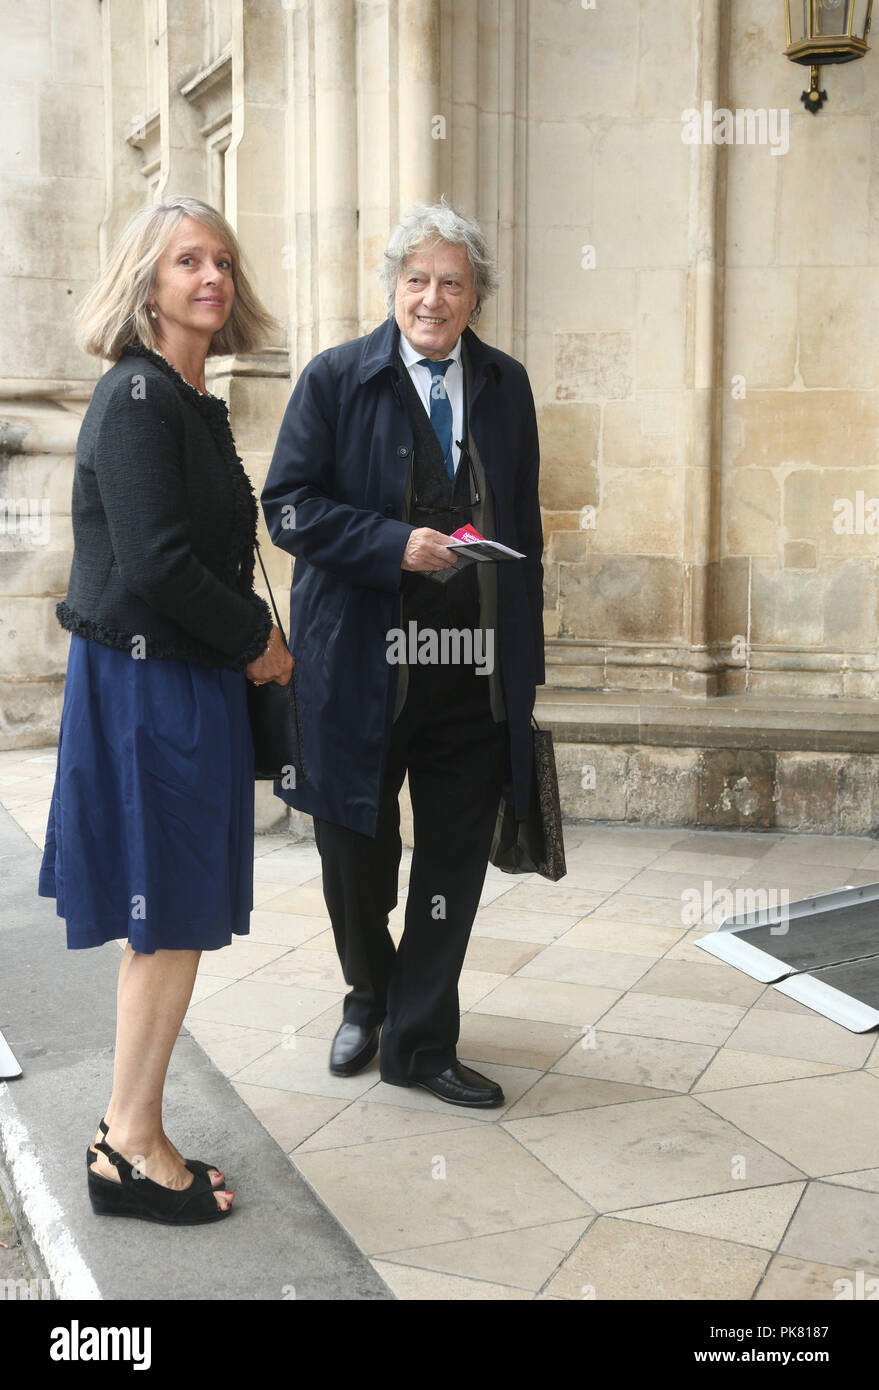 Sir Tom Stoppard attending a service of thanksgiving to celebrate the life and work of Sir Peter Hall, the former director of the National Theatre, at Westminster Abbey in London. - Stock Image